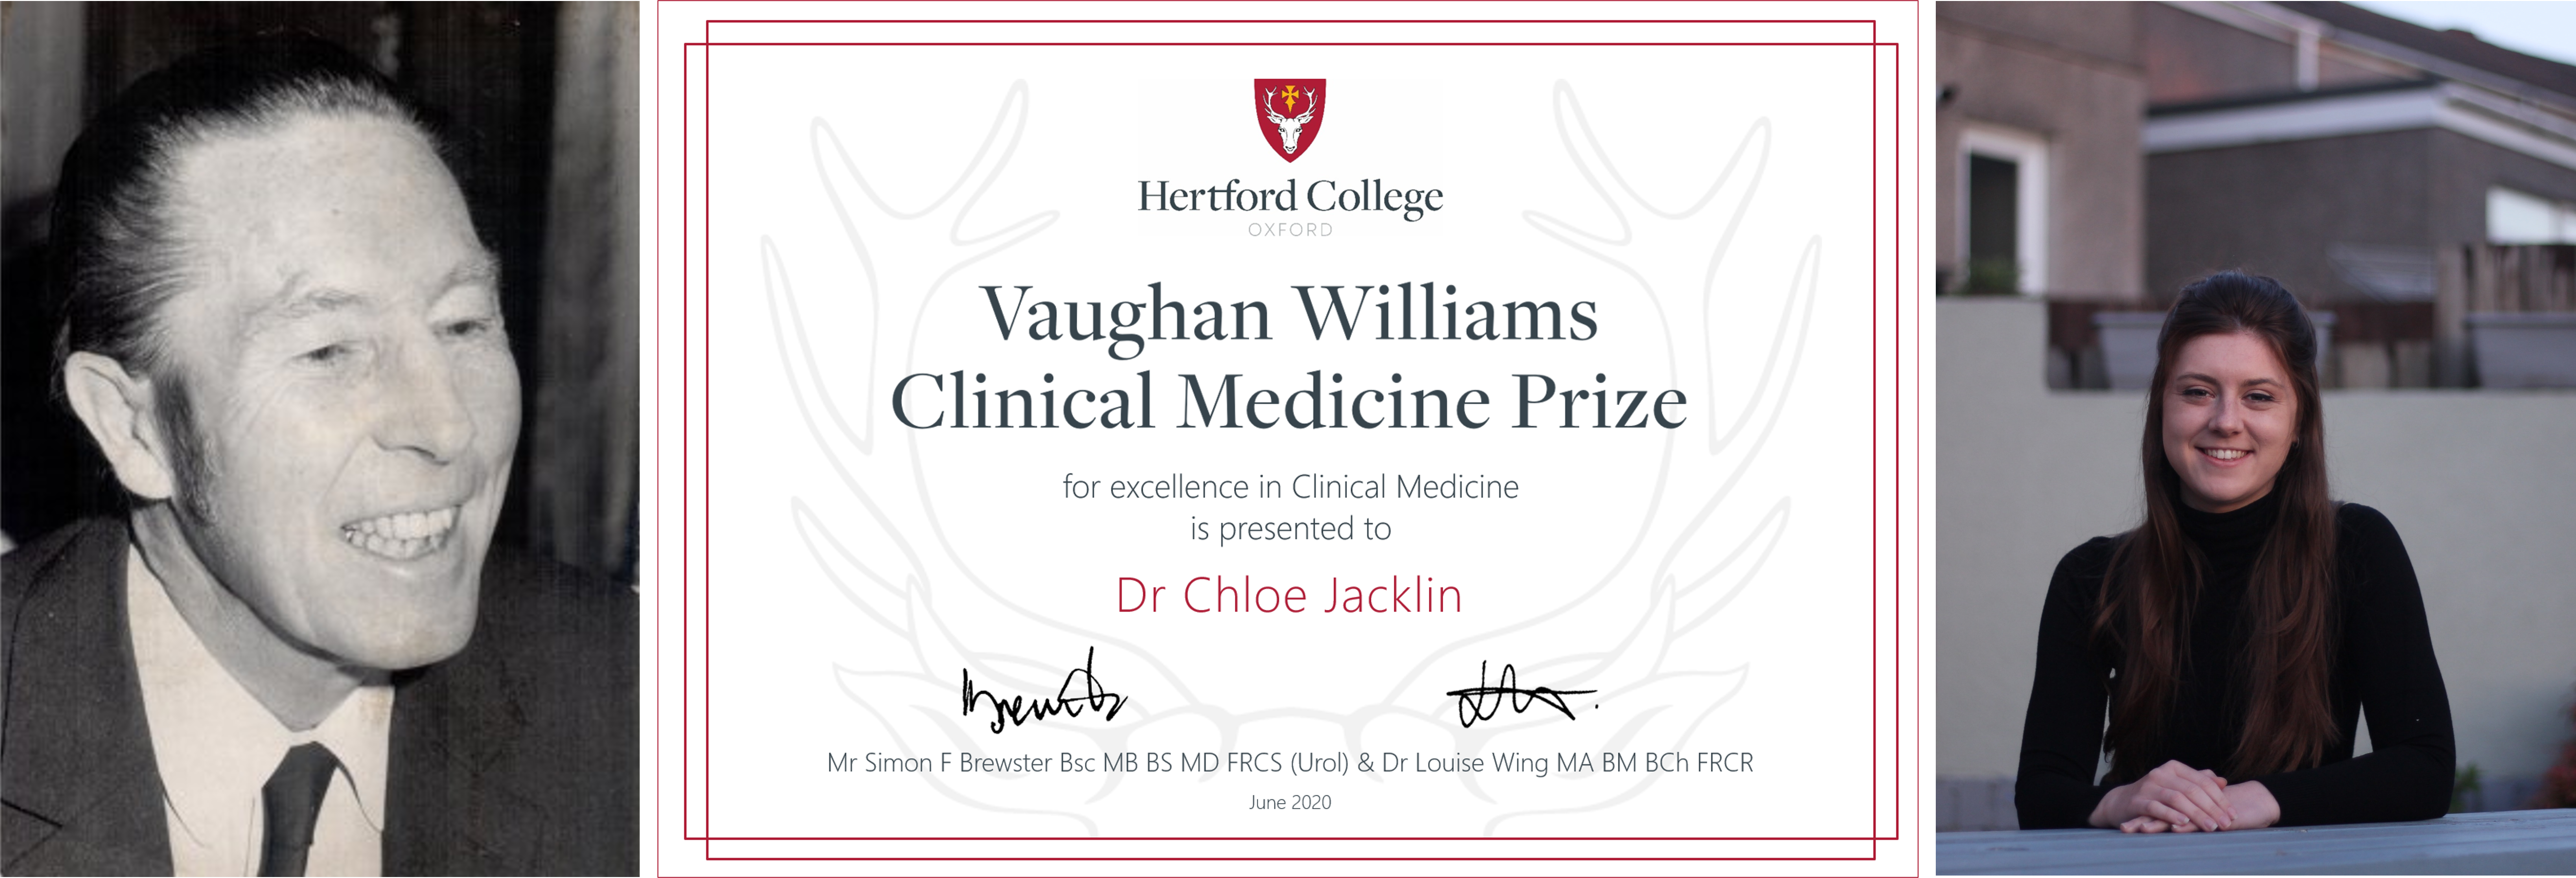 Certificate flanked by smiling photos of Miles Vaughan Williams and Chloe Jacklin